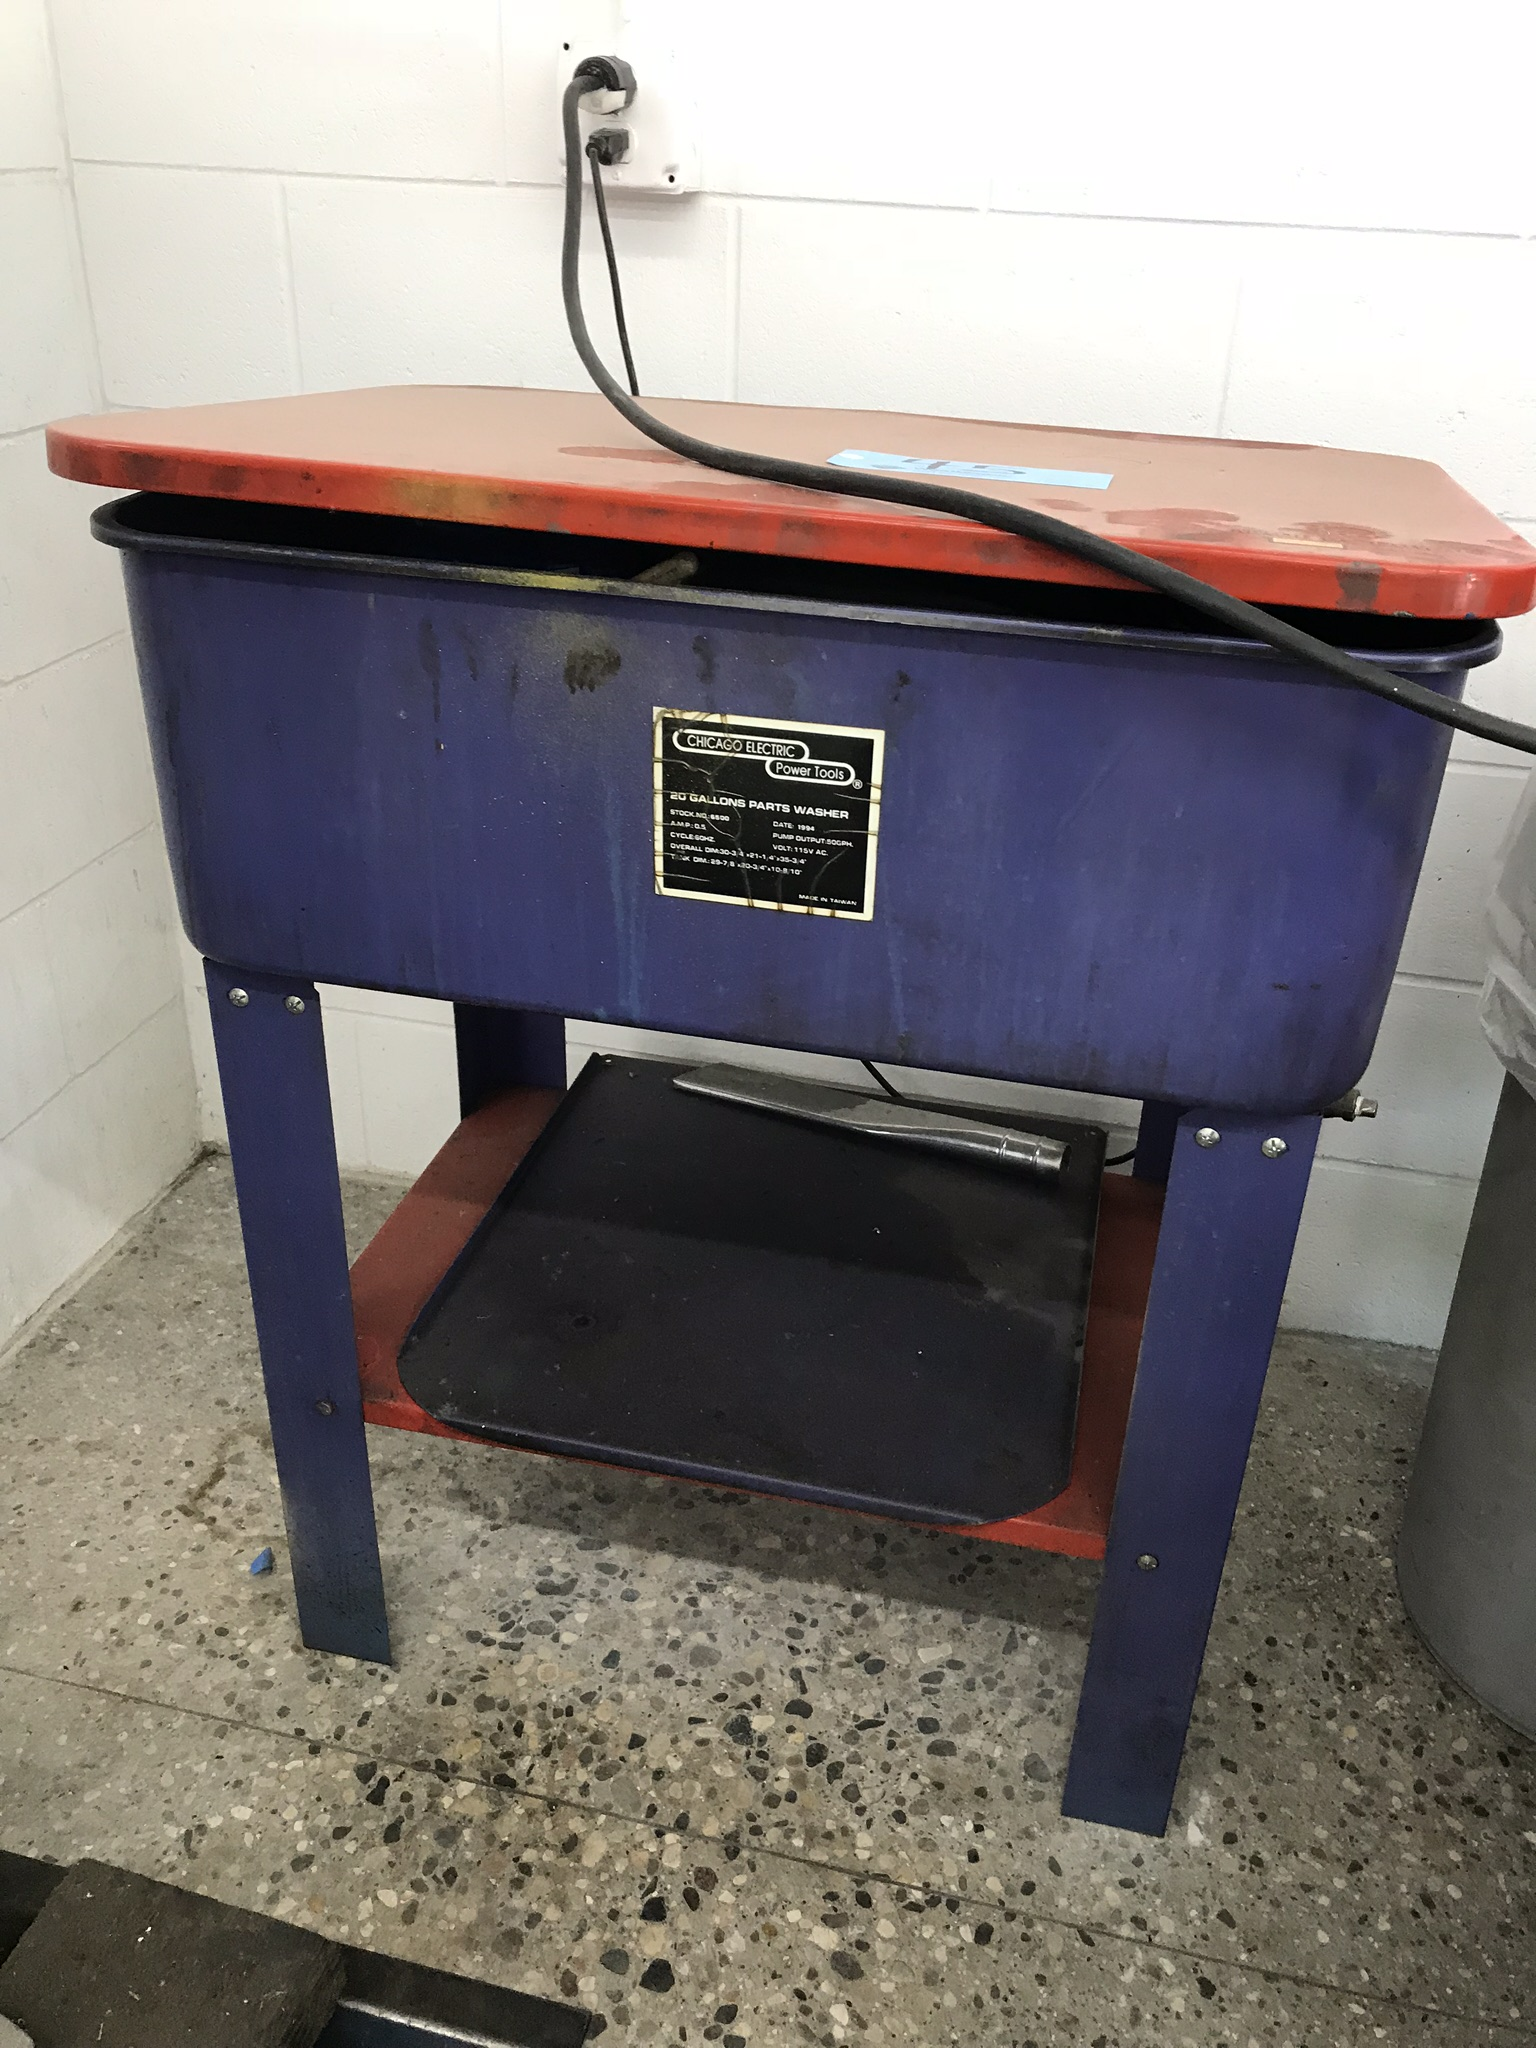 Chicago Electric Solvent-Based Parts Washer Model # 6500.